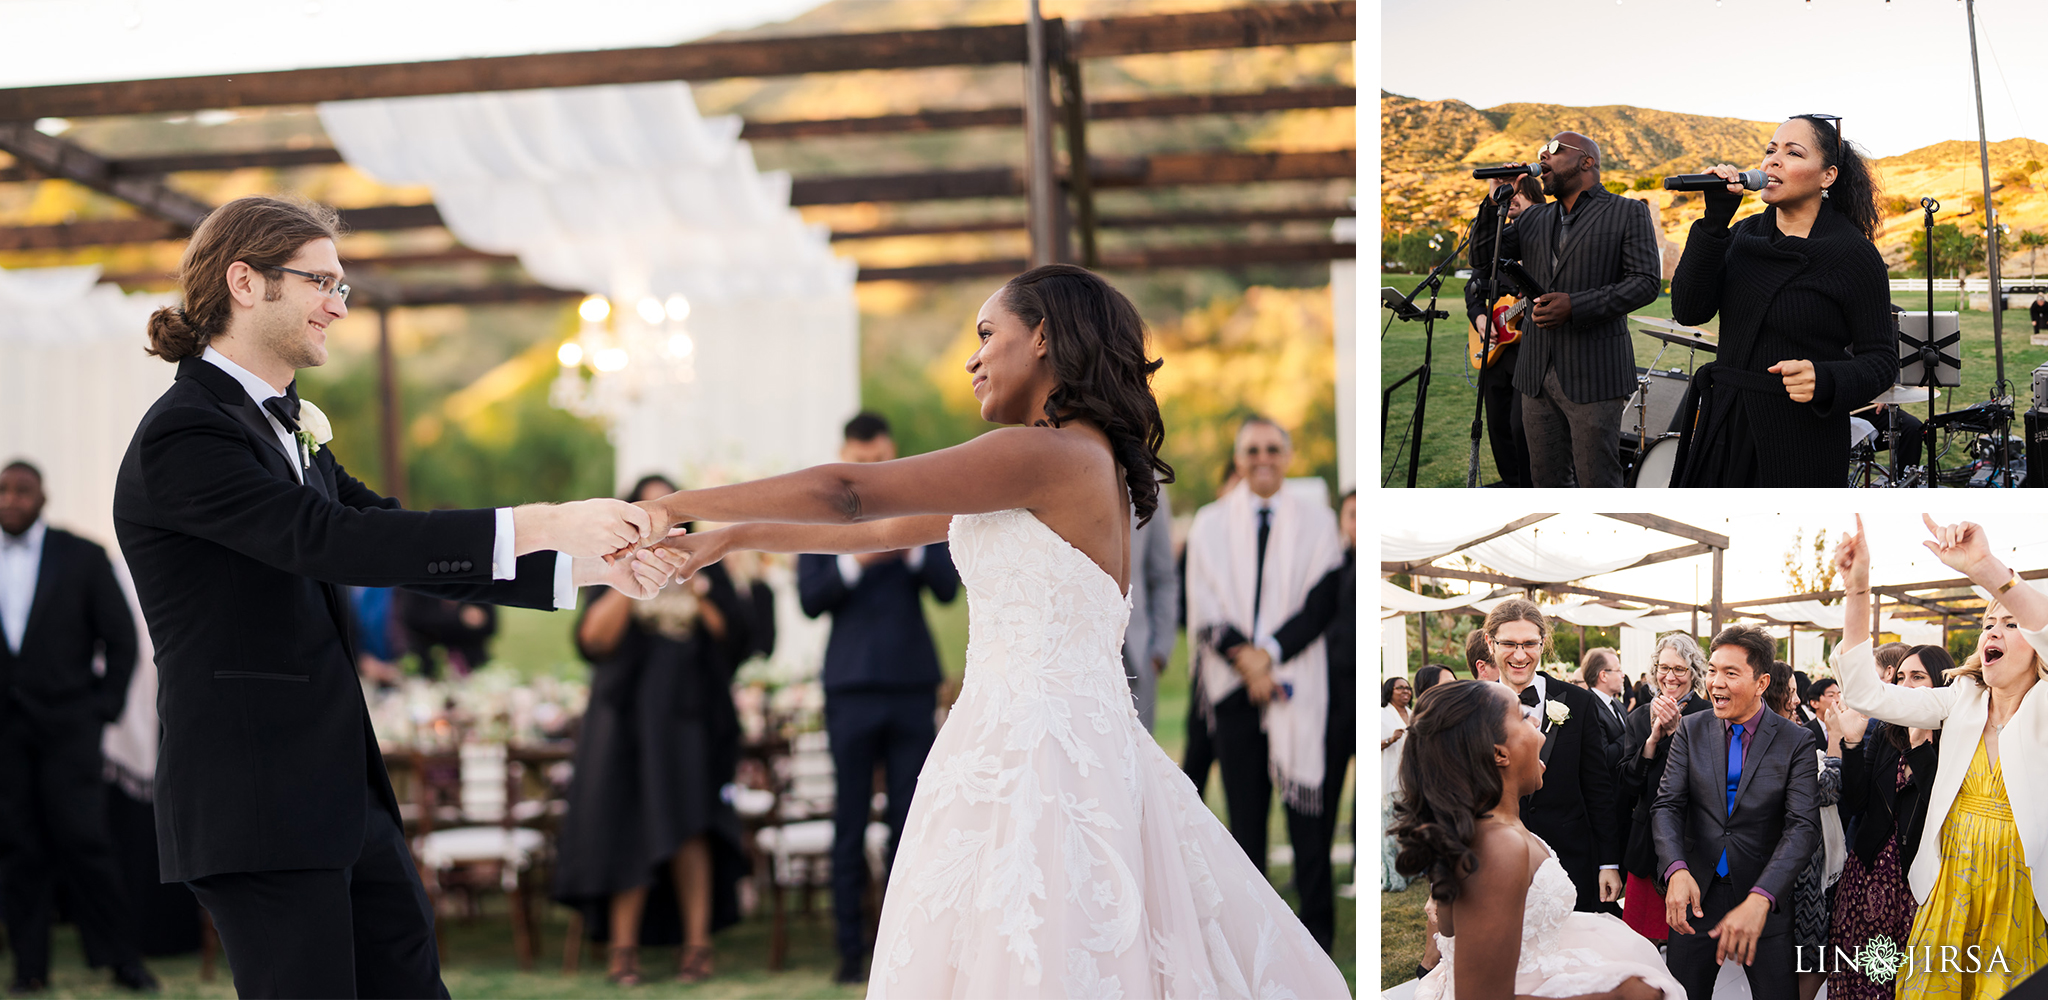 32 Hummingbird Nest Ranch Simi Valley Wedding Photography